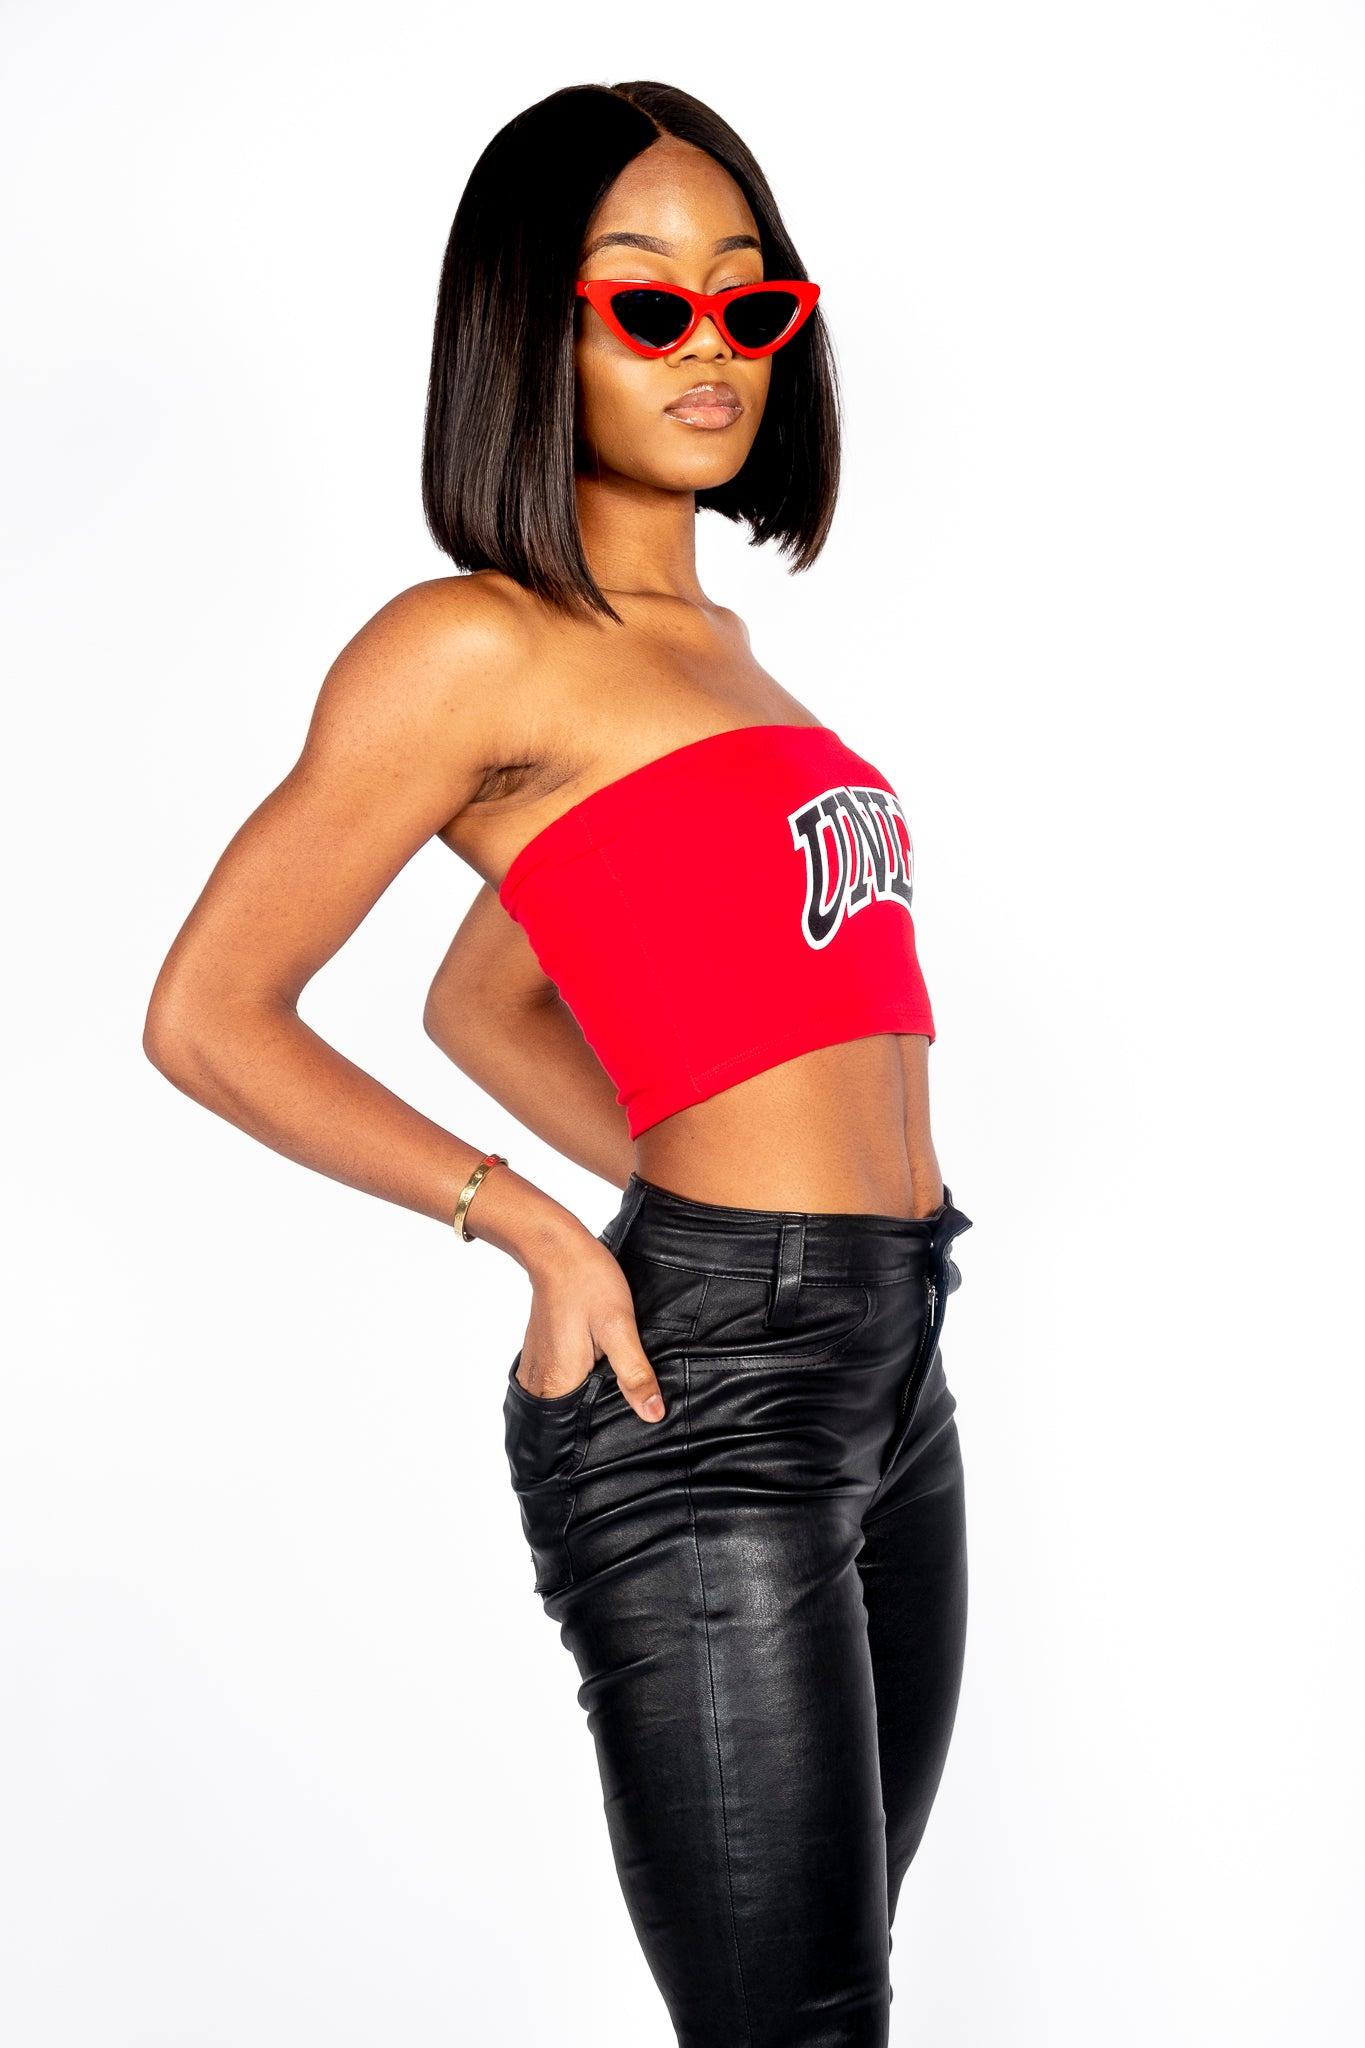 UNLV Tube Top - Hype and Vice